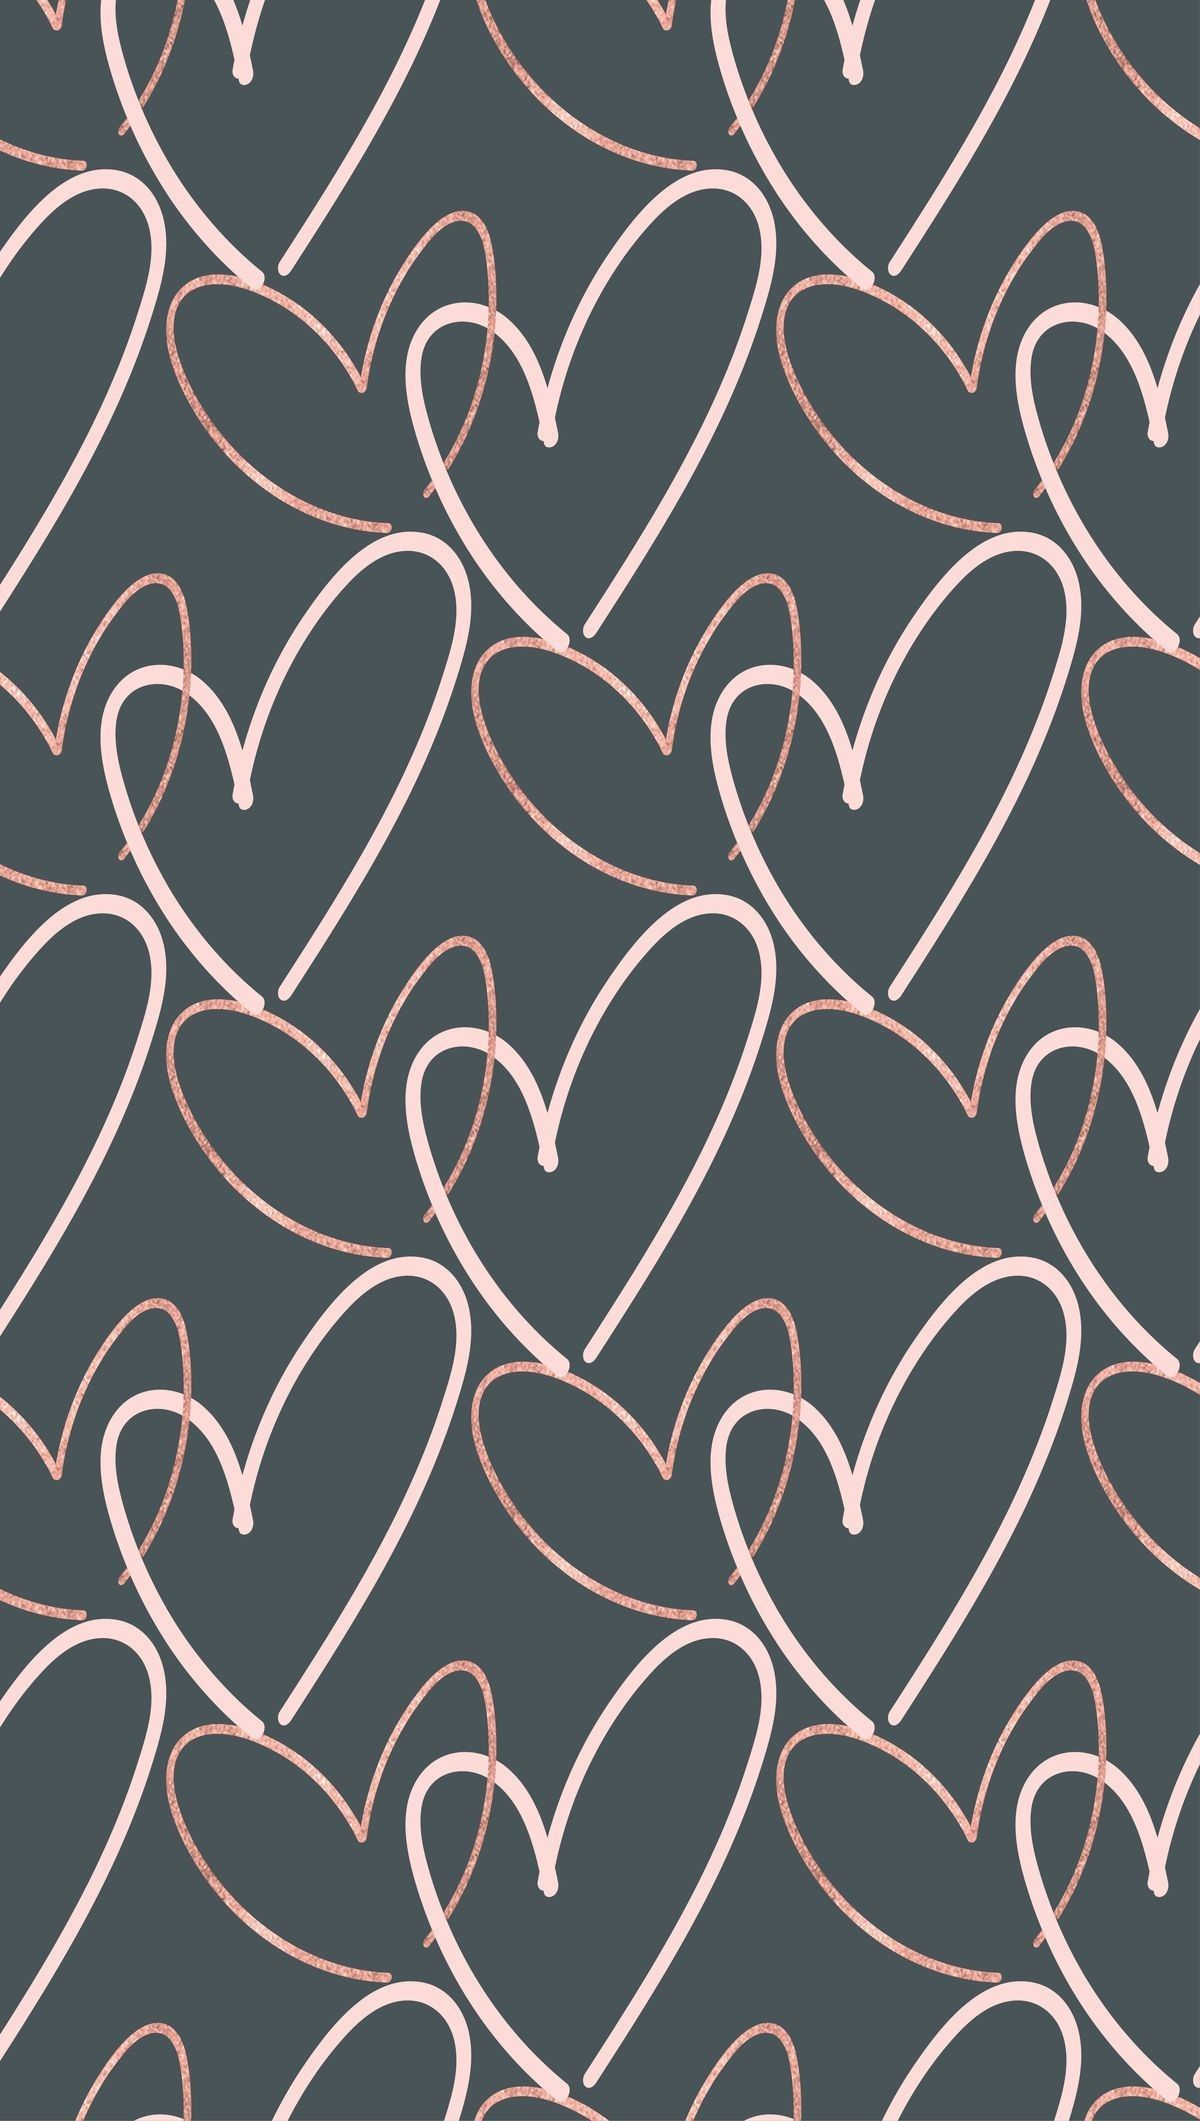 Image by Jessica Harris on wallpaper4 Valentines